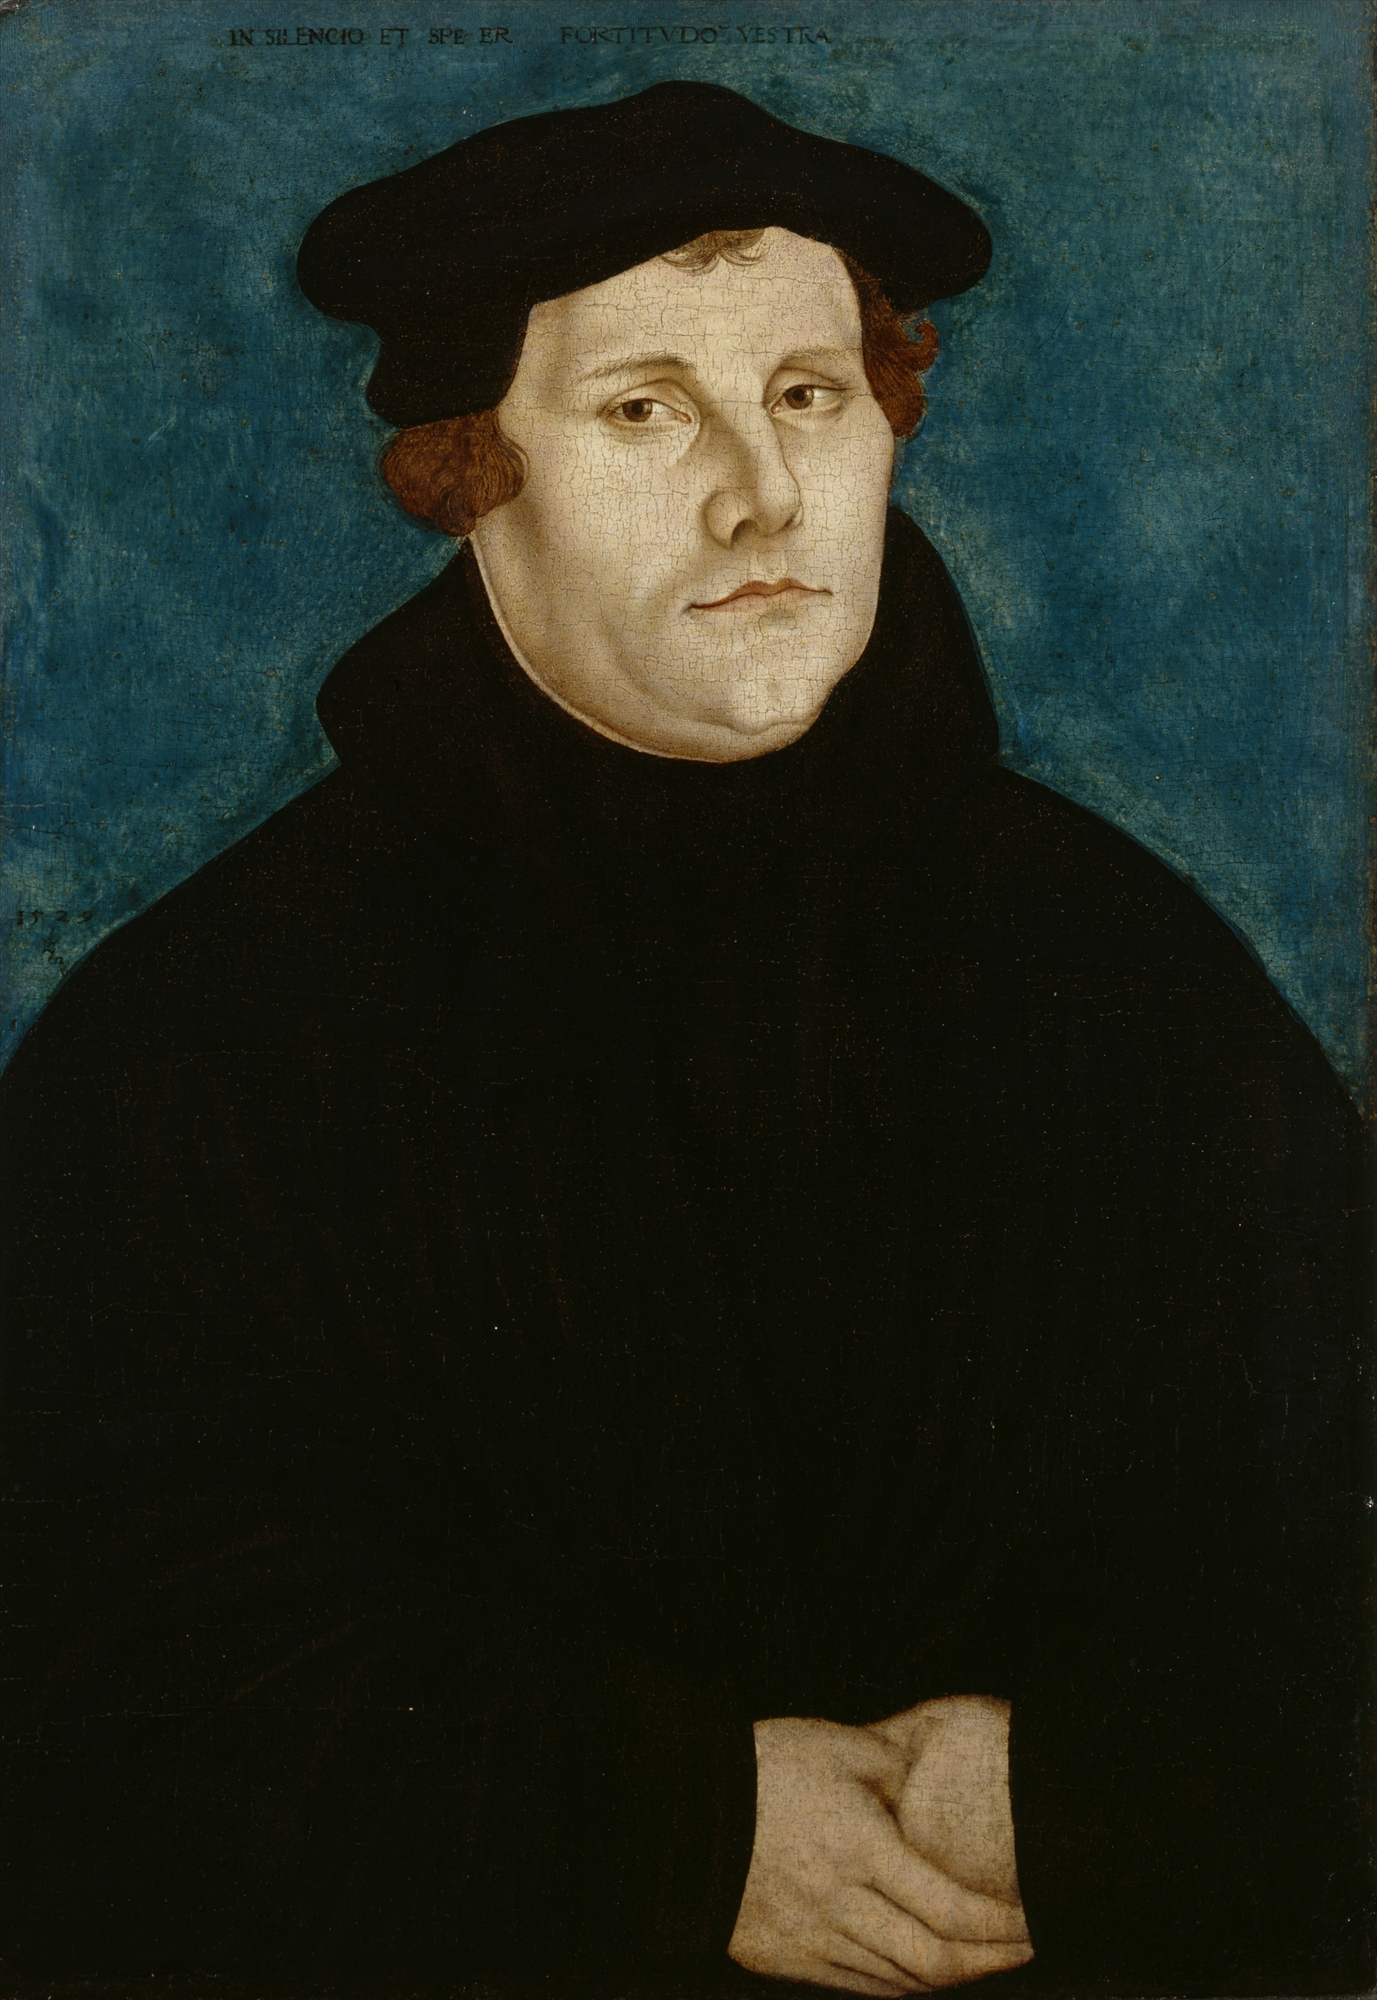 Art History News: Martin Luther: Art and the Reformation